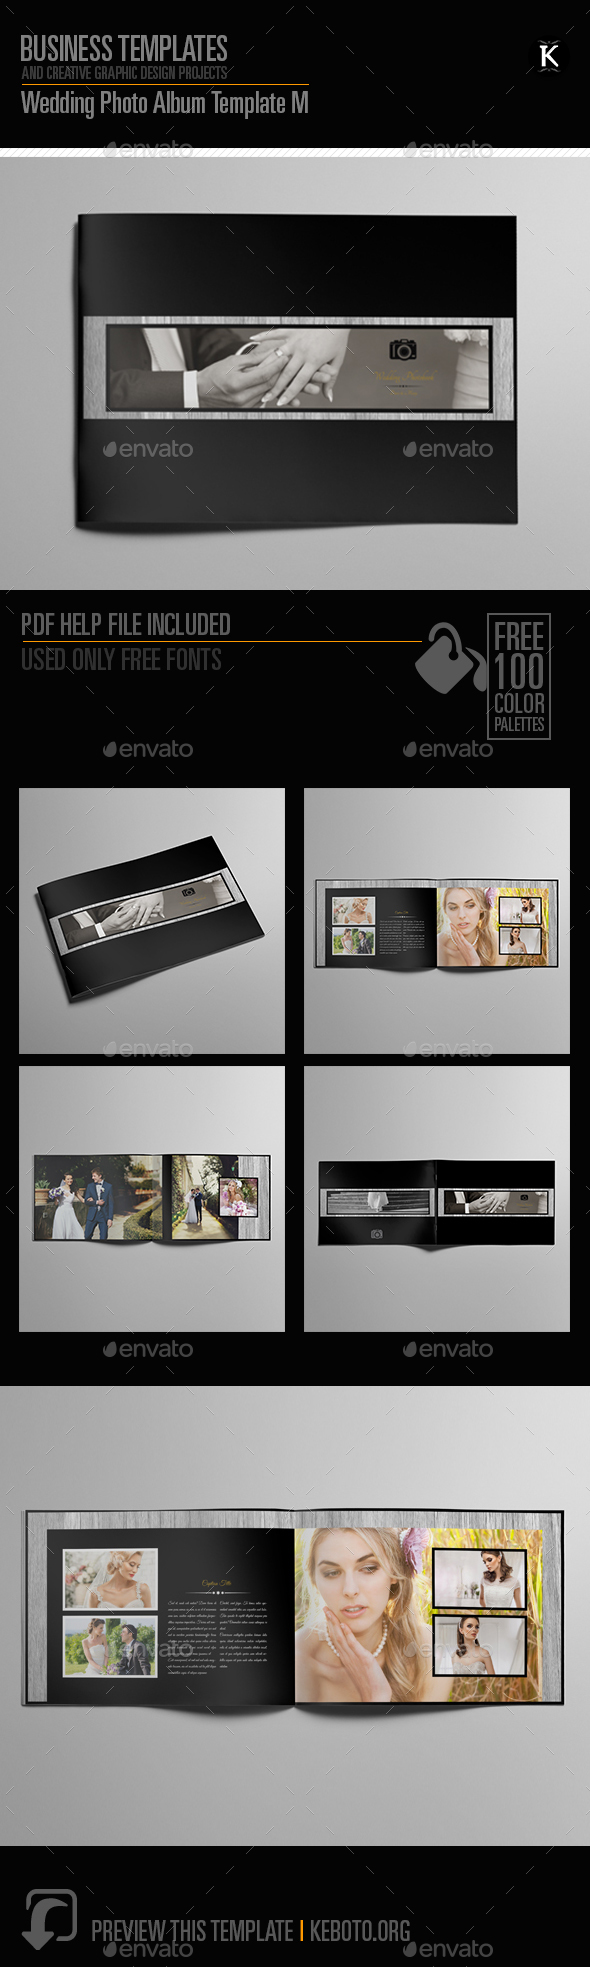 Wedding Photo Album Template M - Photo Albums Print Templates